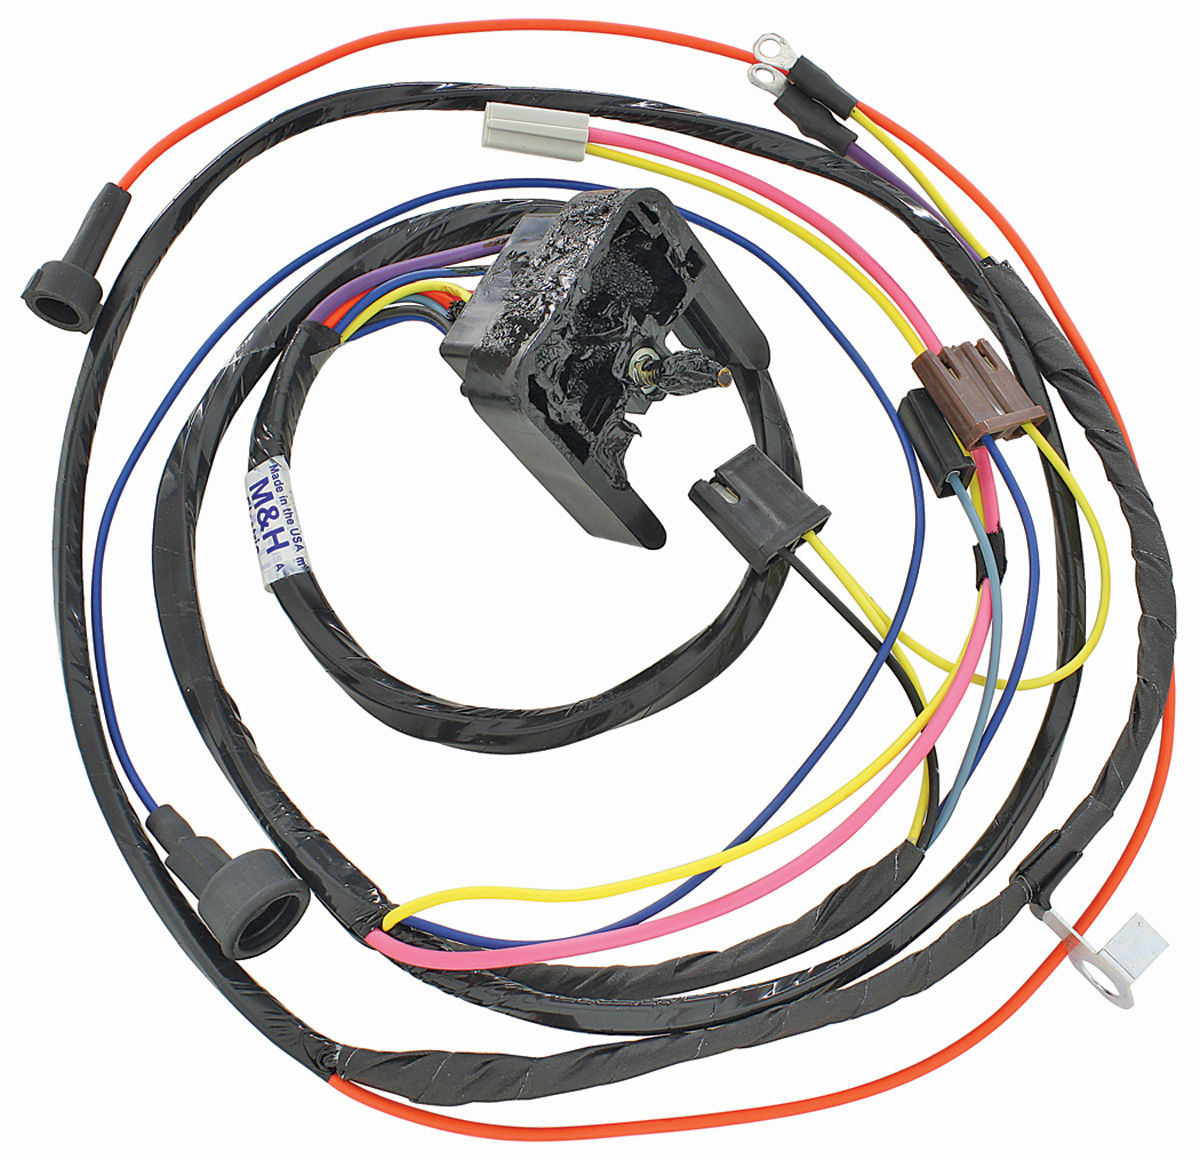 38947 lrg?v=102520130818 m&h 1968 69 chevelle engine harness 396 hei w warning lights 1968 camaro complete wiring harness at n-0.co